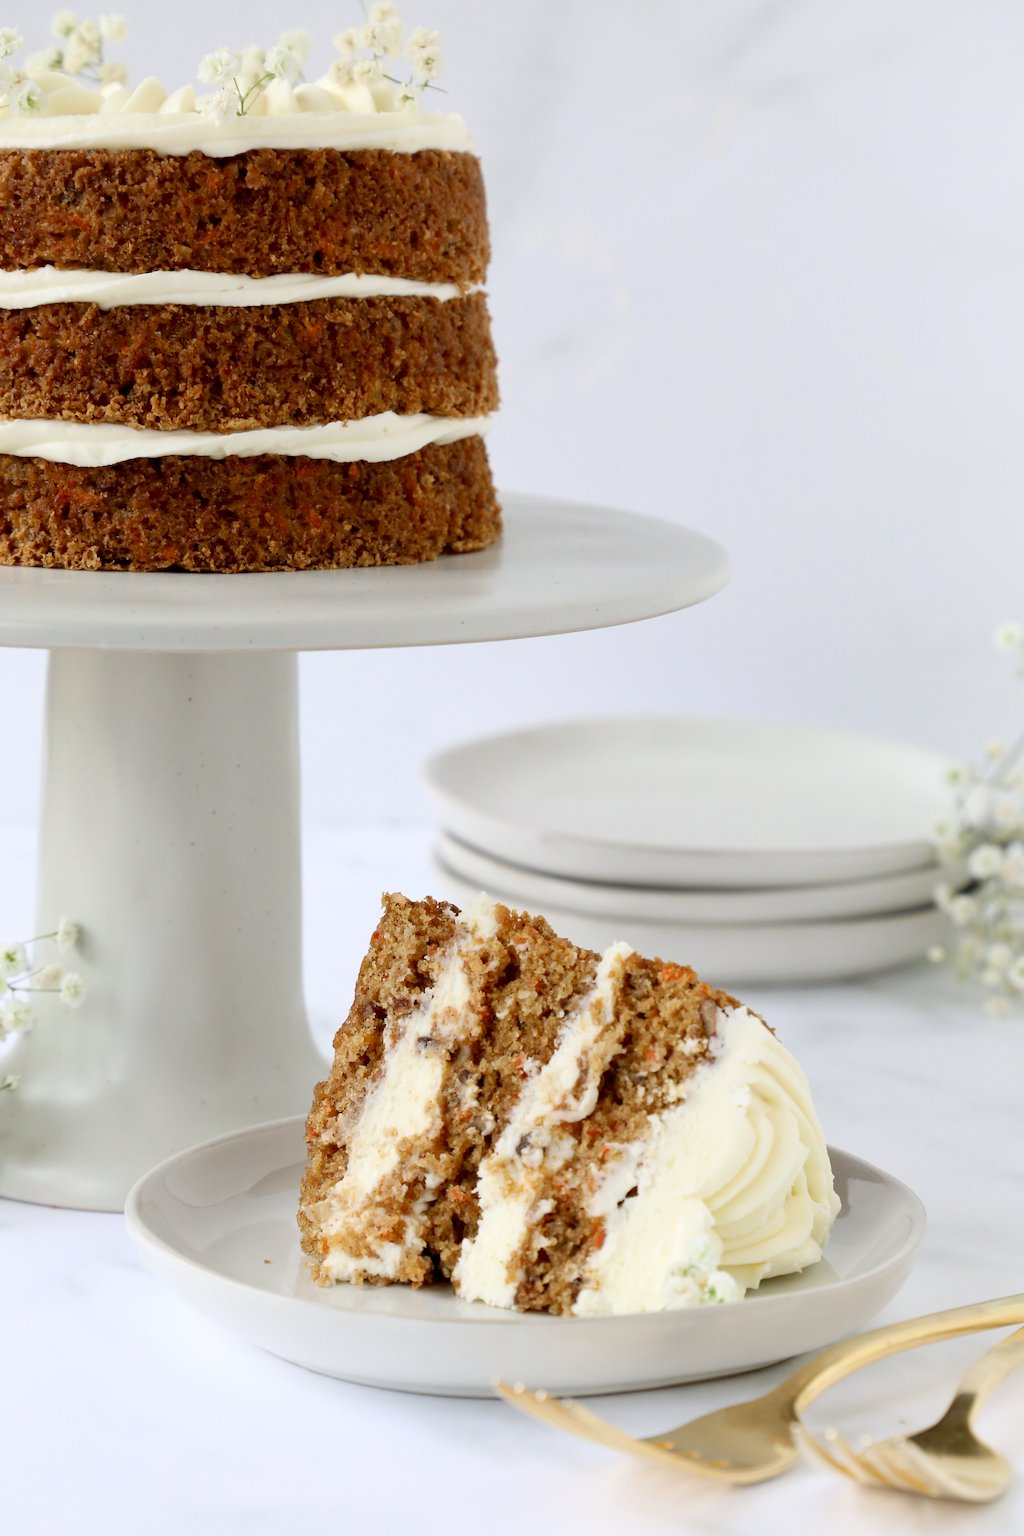 Three layers of carrot cake on a cake stand with a slice of carrot cake in front of it